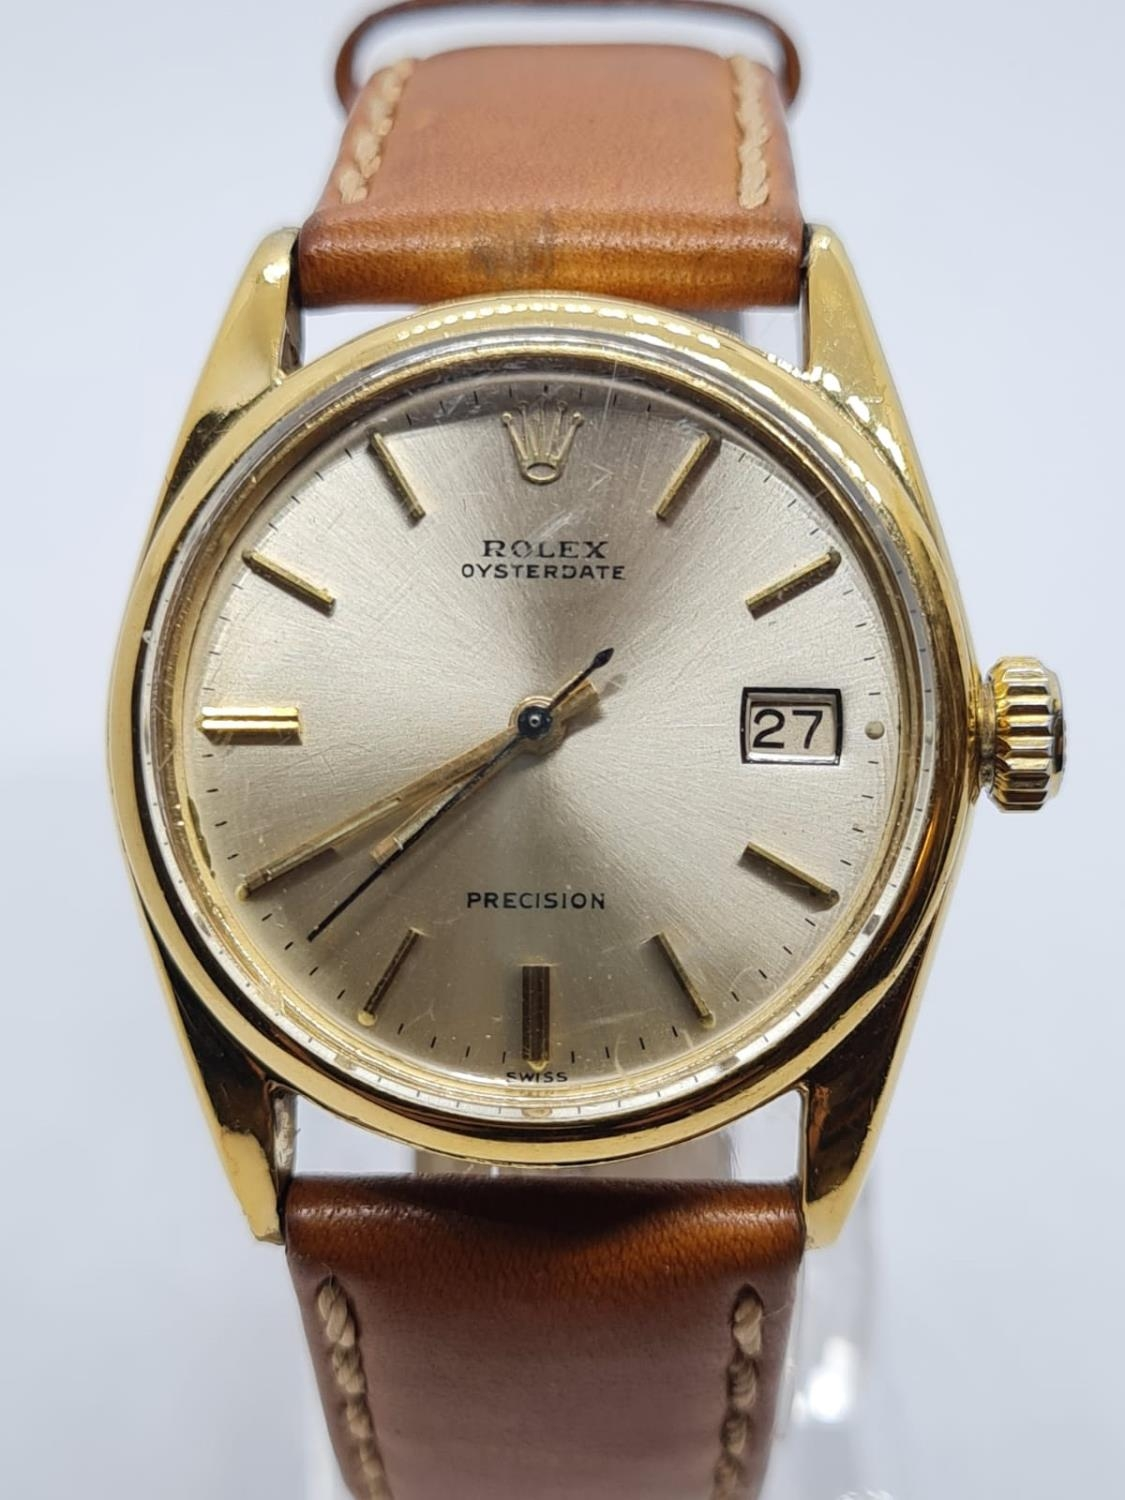 Vintage Rolex Oysterdate Precision Gents WATCH. Round face and genuine brown leather strap. 32mm